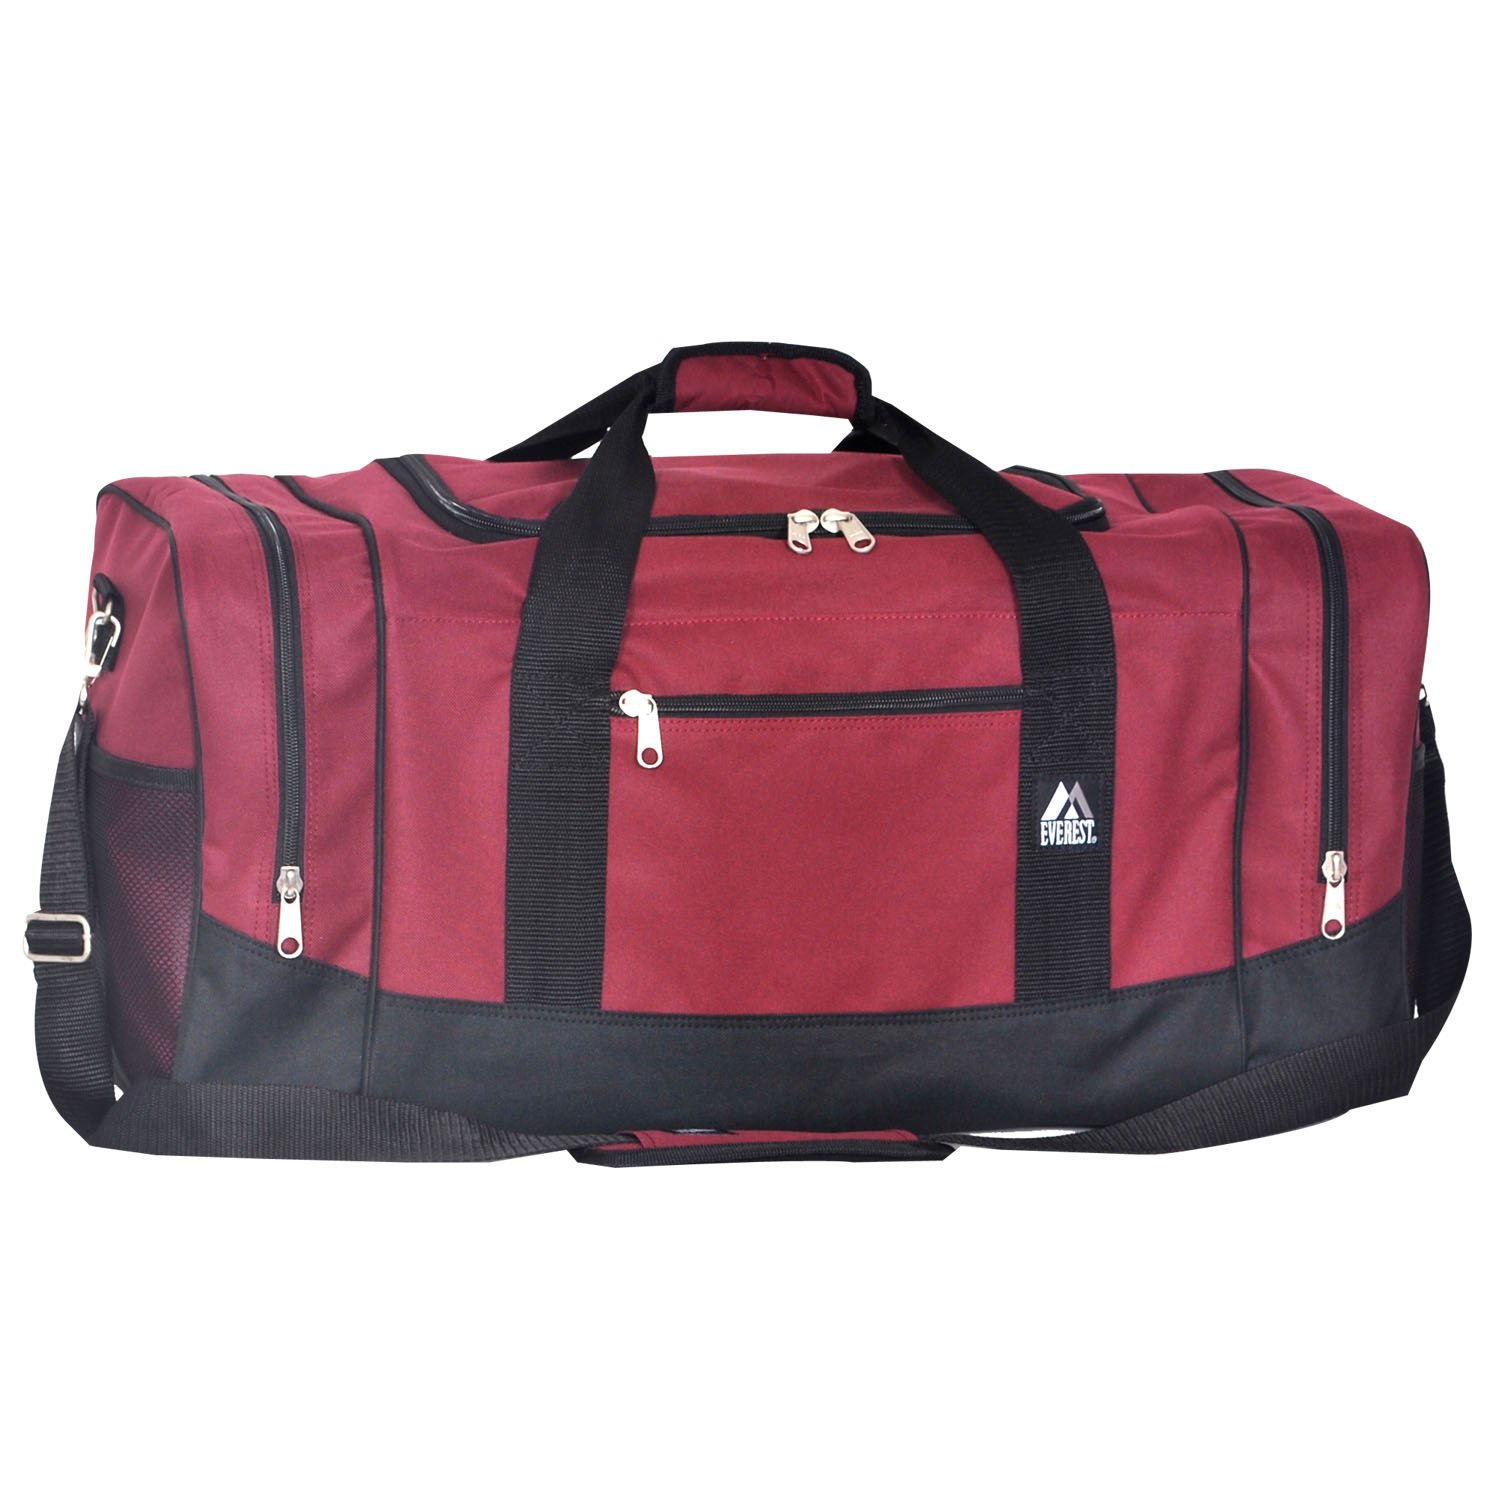 Everest 025-DGRY/BK Sporty Gear Bag-Large, Dark Gray, One Size EVFDS